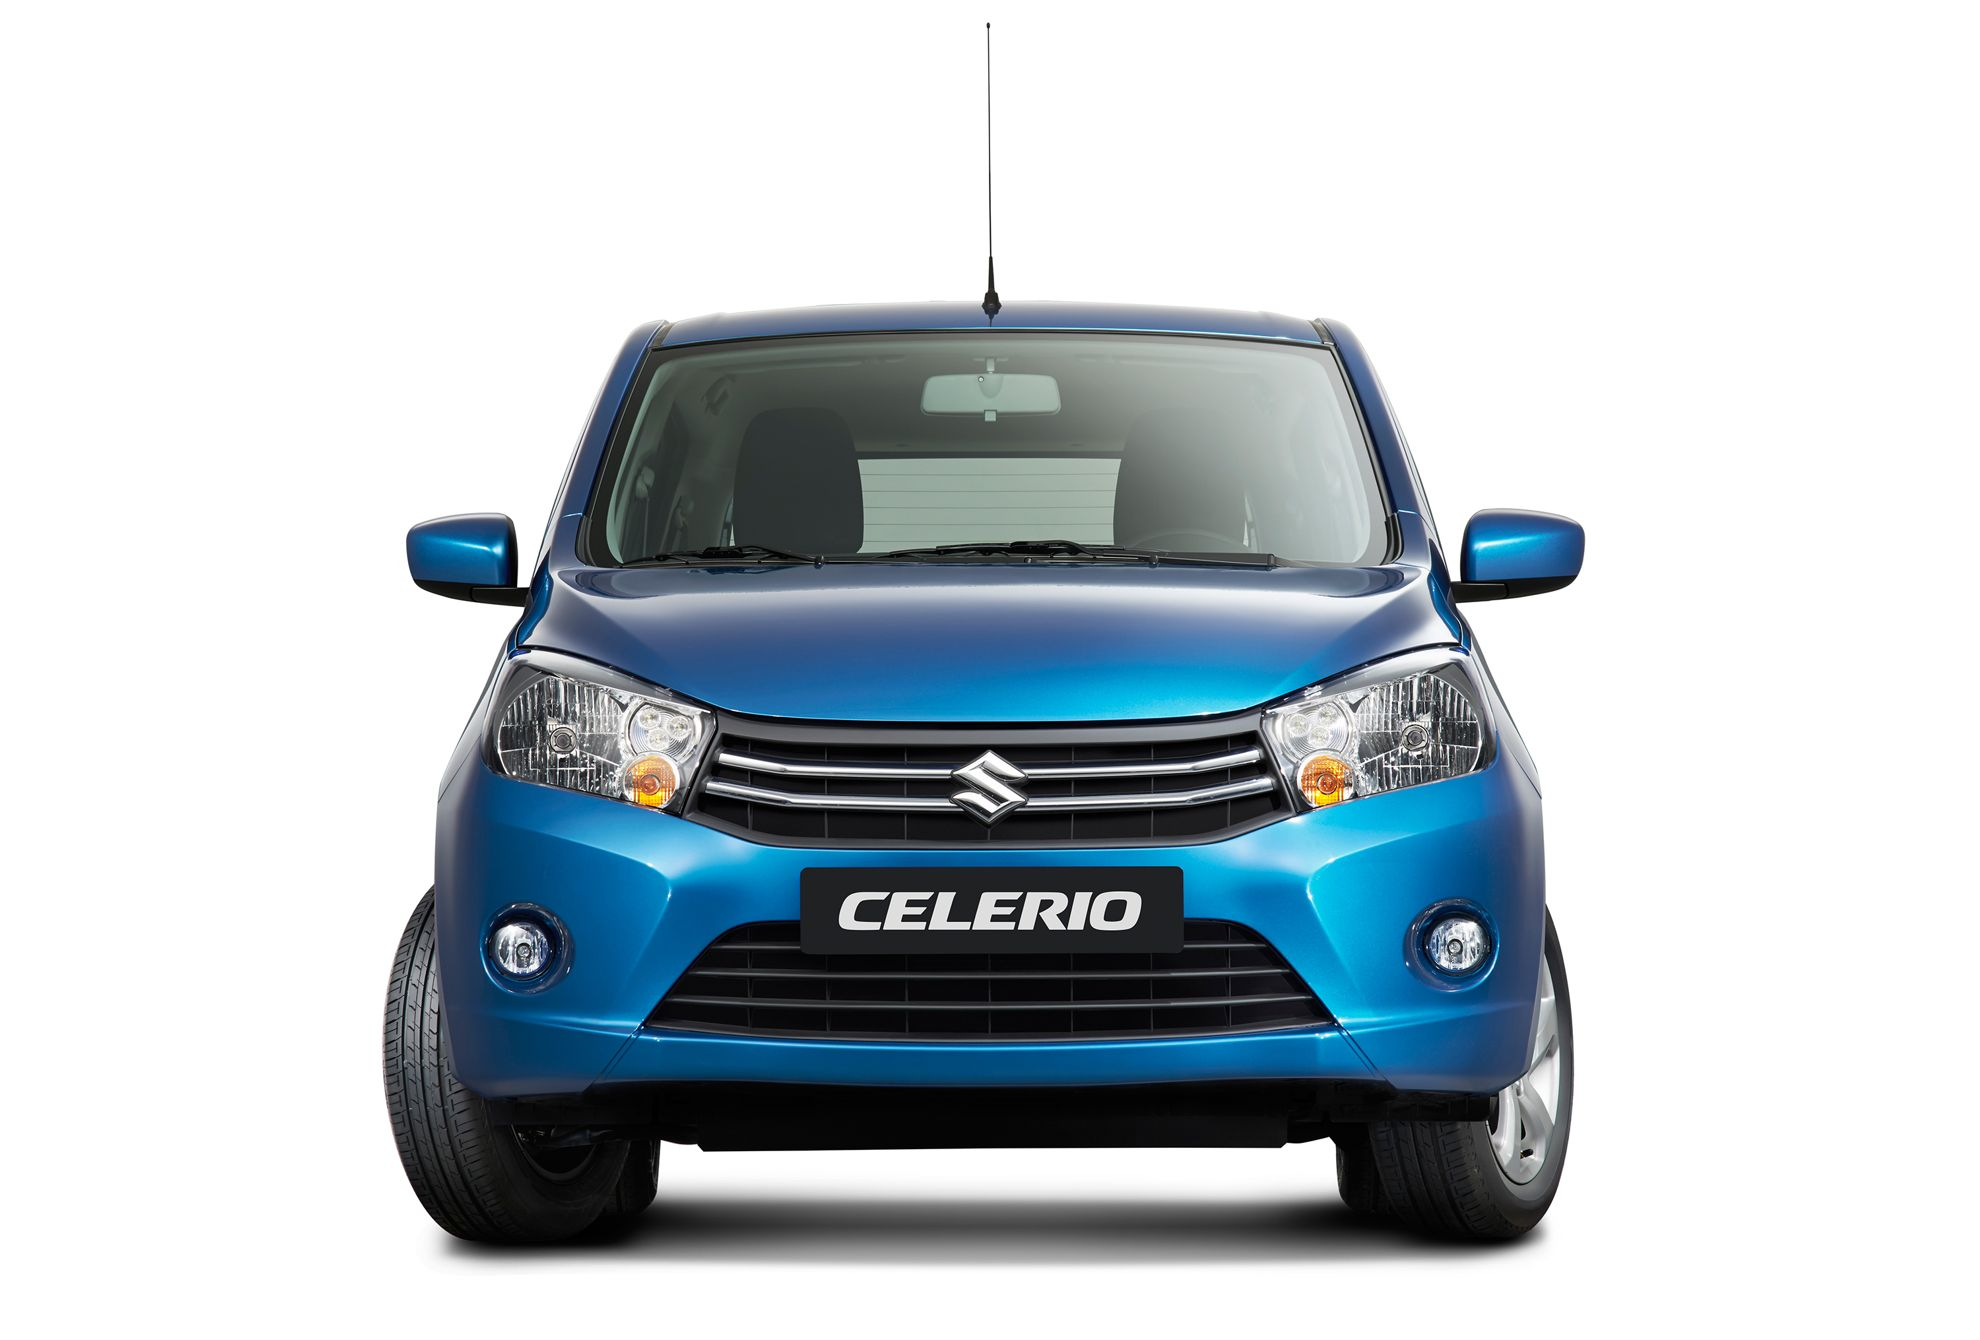 3d car shows suzuki celerio at the geneva motor show 2014. Black Bedroom Furniture Sets. Home Design Ideas